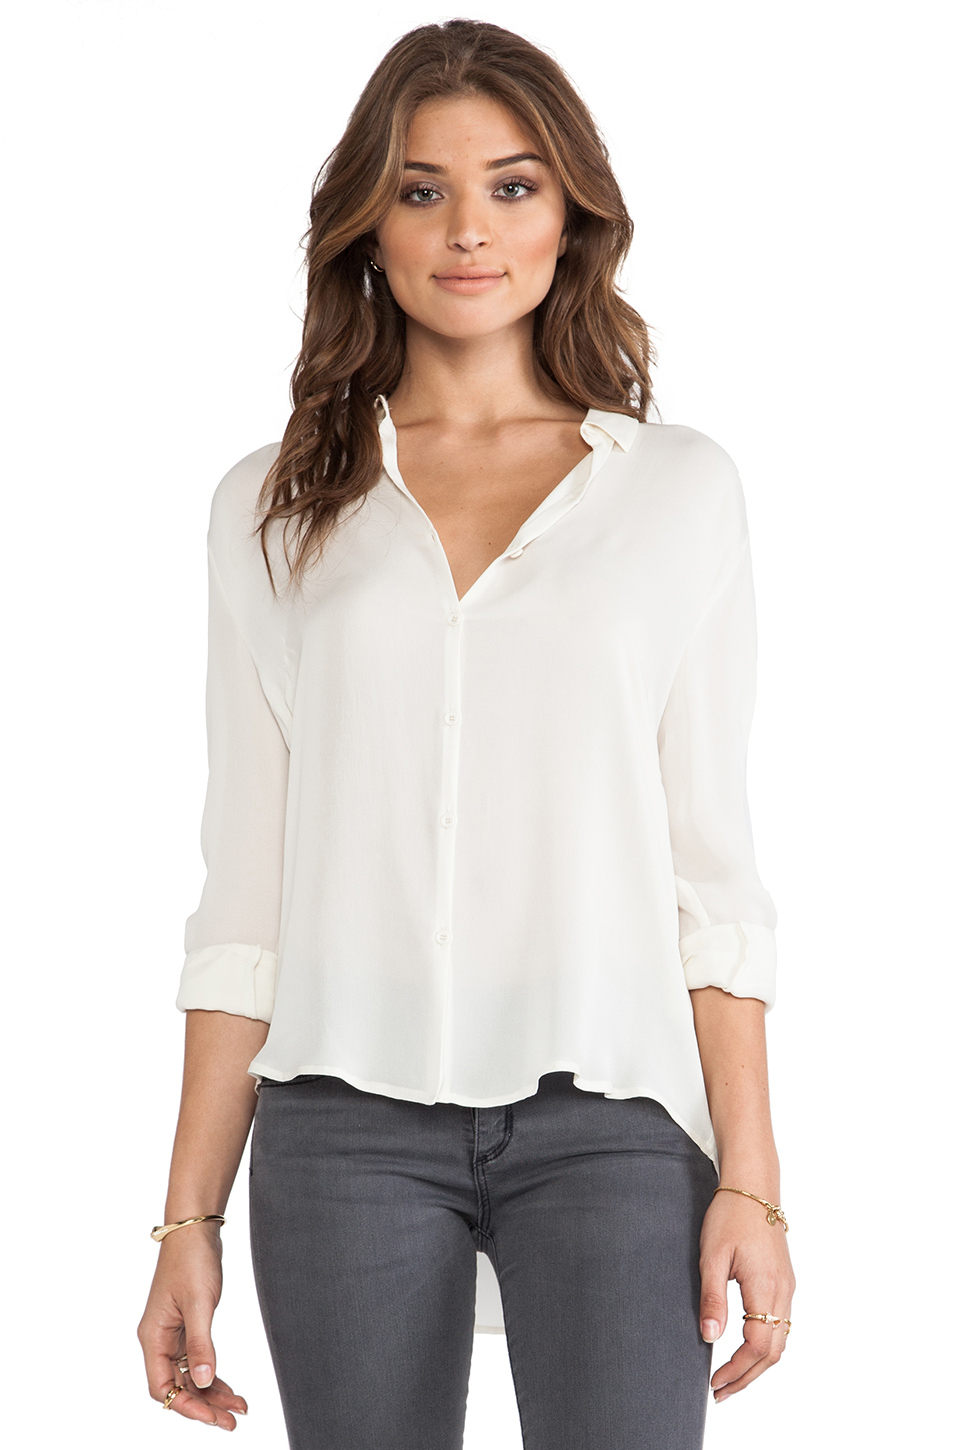 When ready to choose a beautiful Satin Blouse, make sure to check out a Printed Satin Blouse as well as a Solid Satin Blouse, while at Macys.